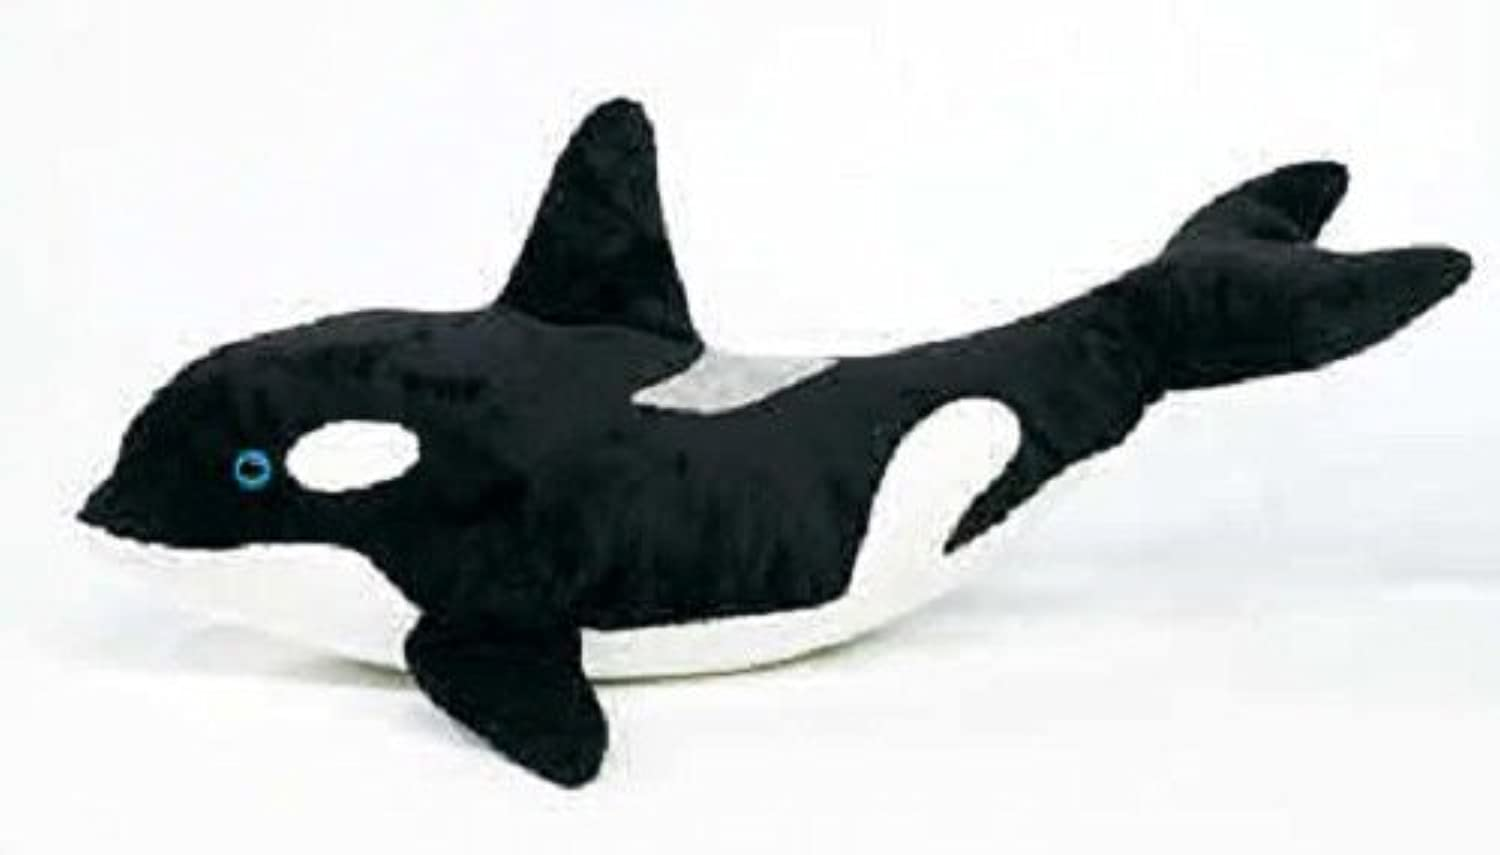 40 Large Orca Killer Whale Plush Stuffed Animal Toy by Fiesta Toys by Fiesta Toys